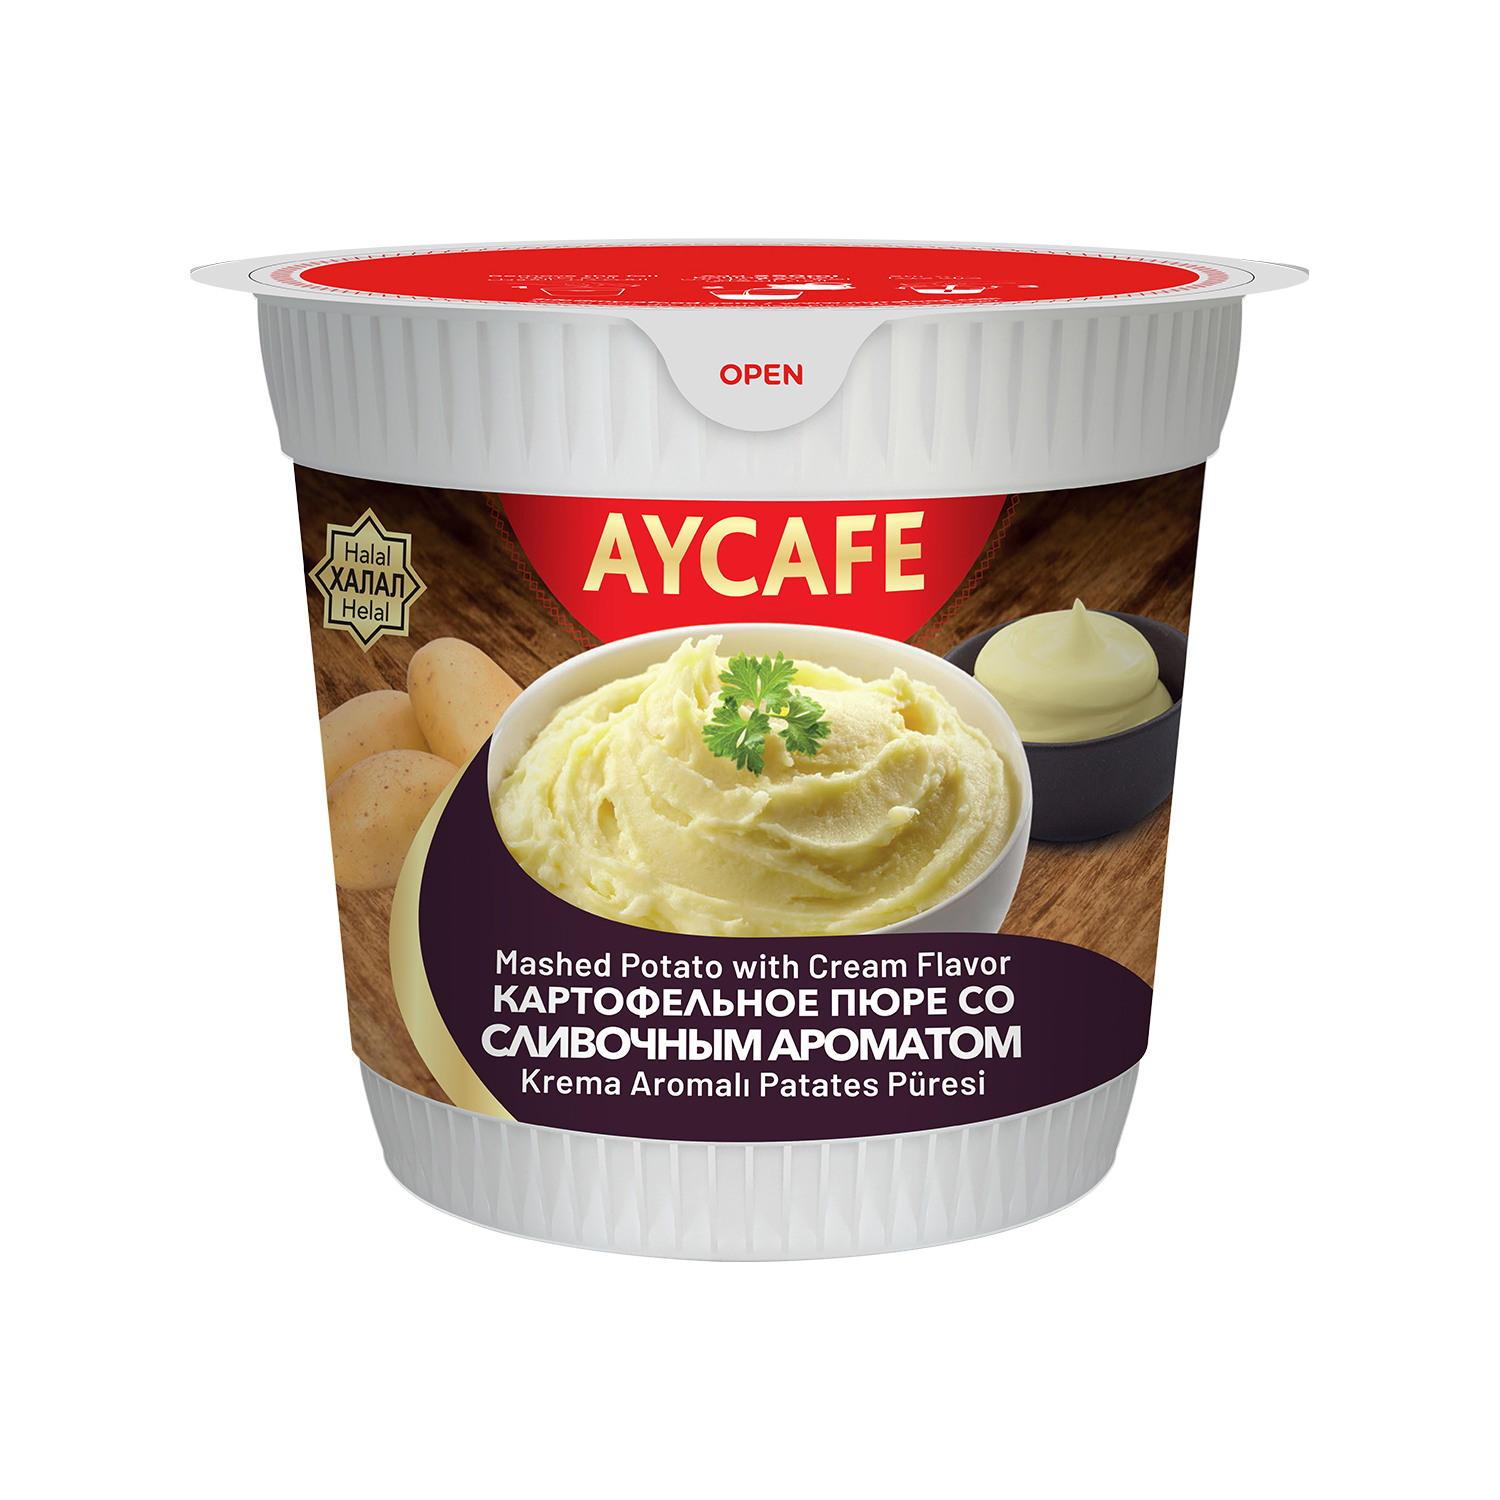 Aycafe Mashed Potato with Cream Flavor